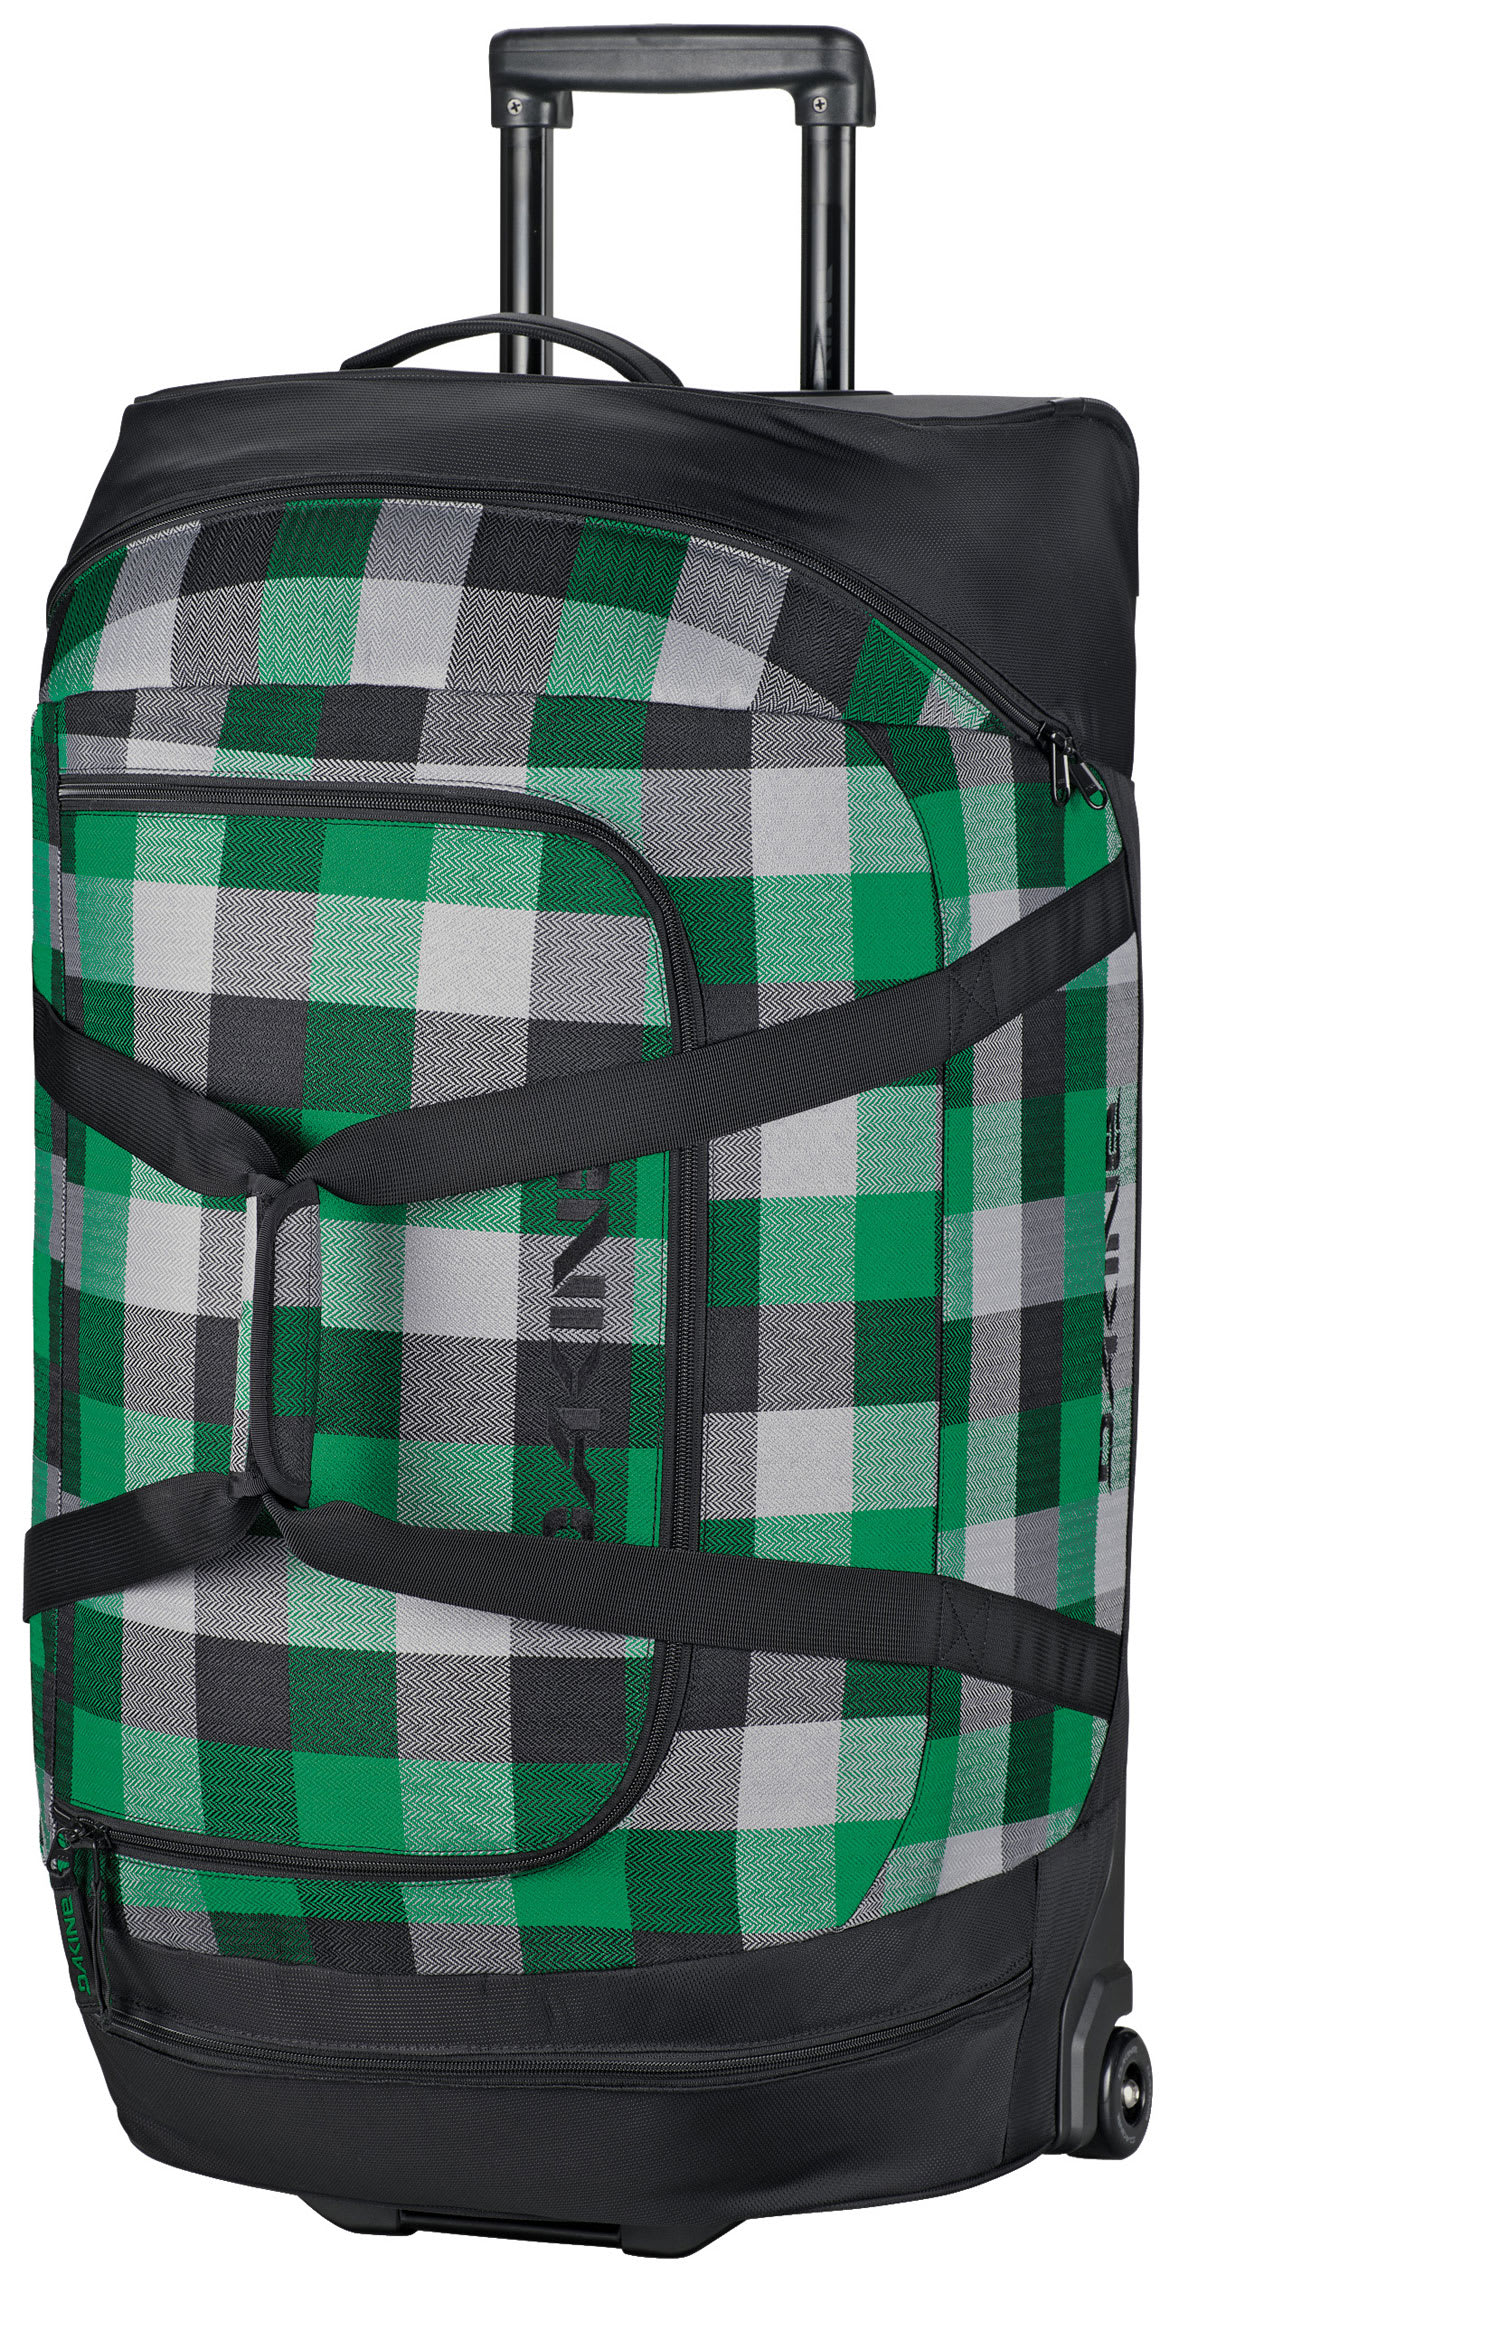 Dakine Wheeled Duffle Travel Bag